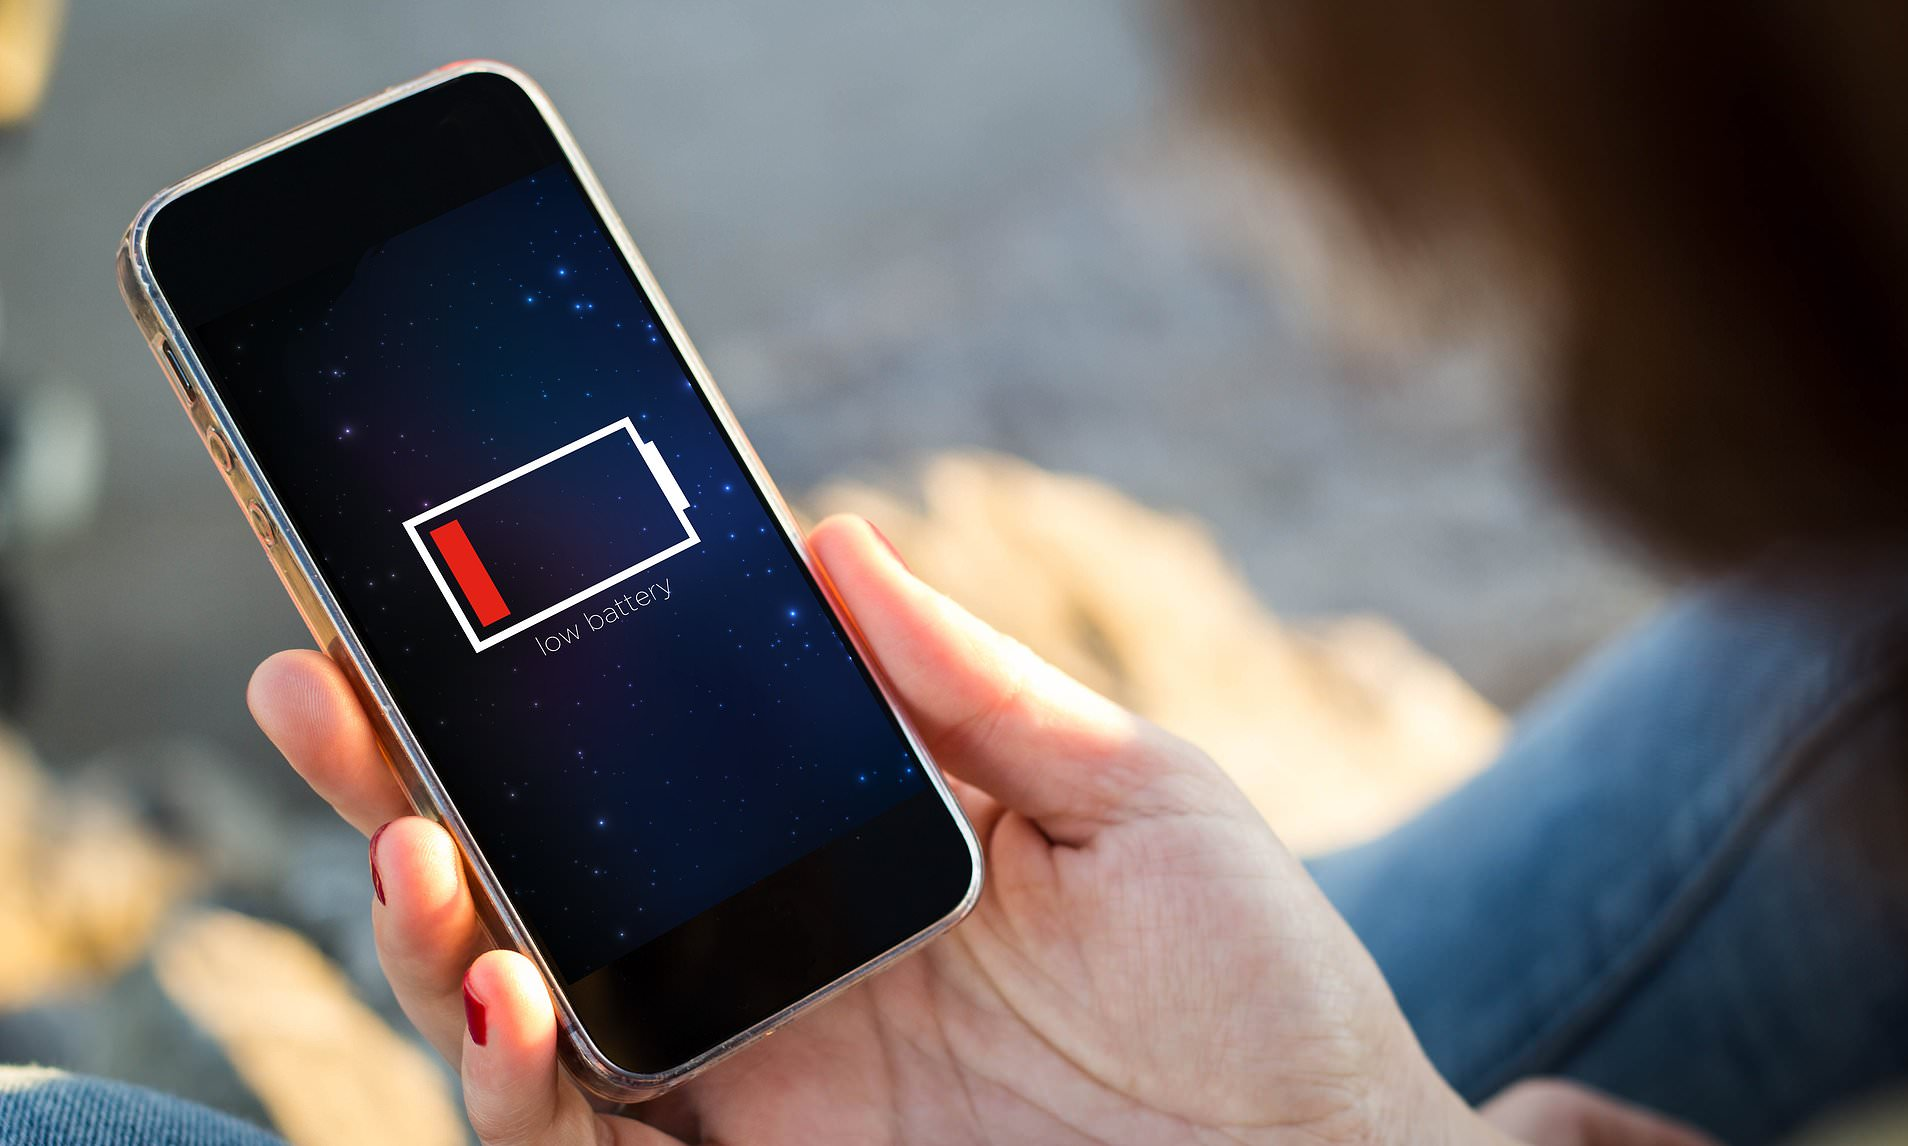 power back-up system used widely at present to recharge mobile phones is a 'dangerous' device